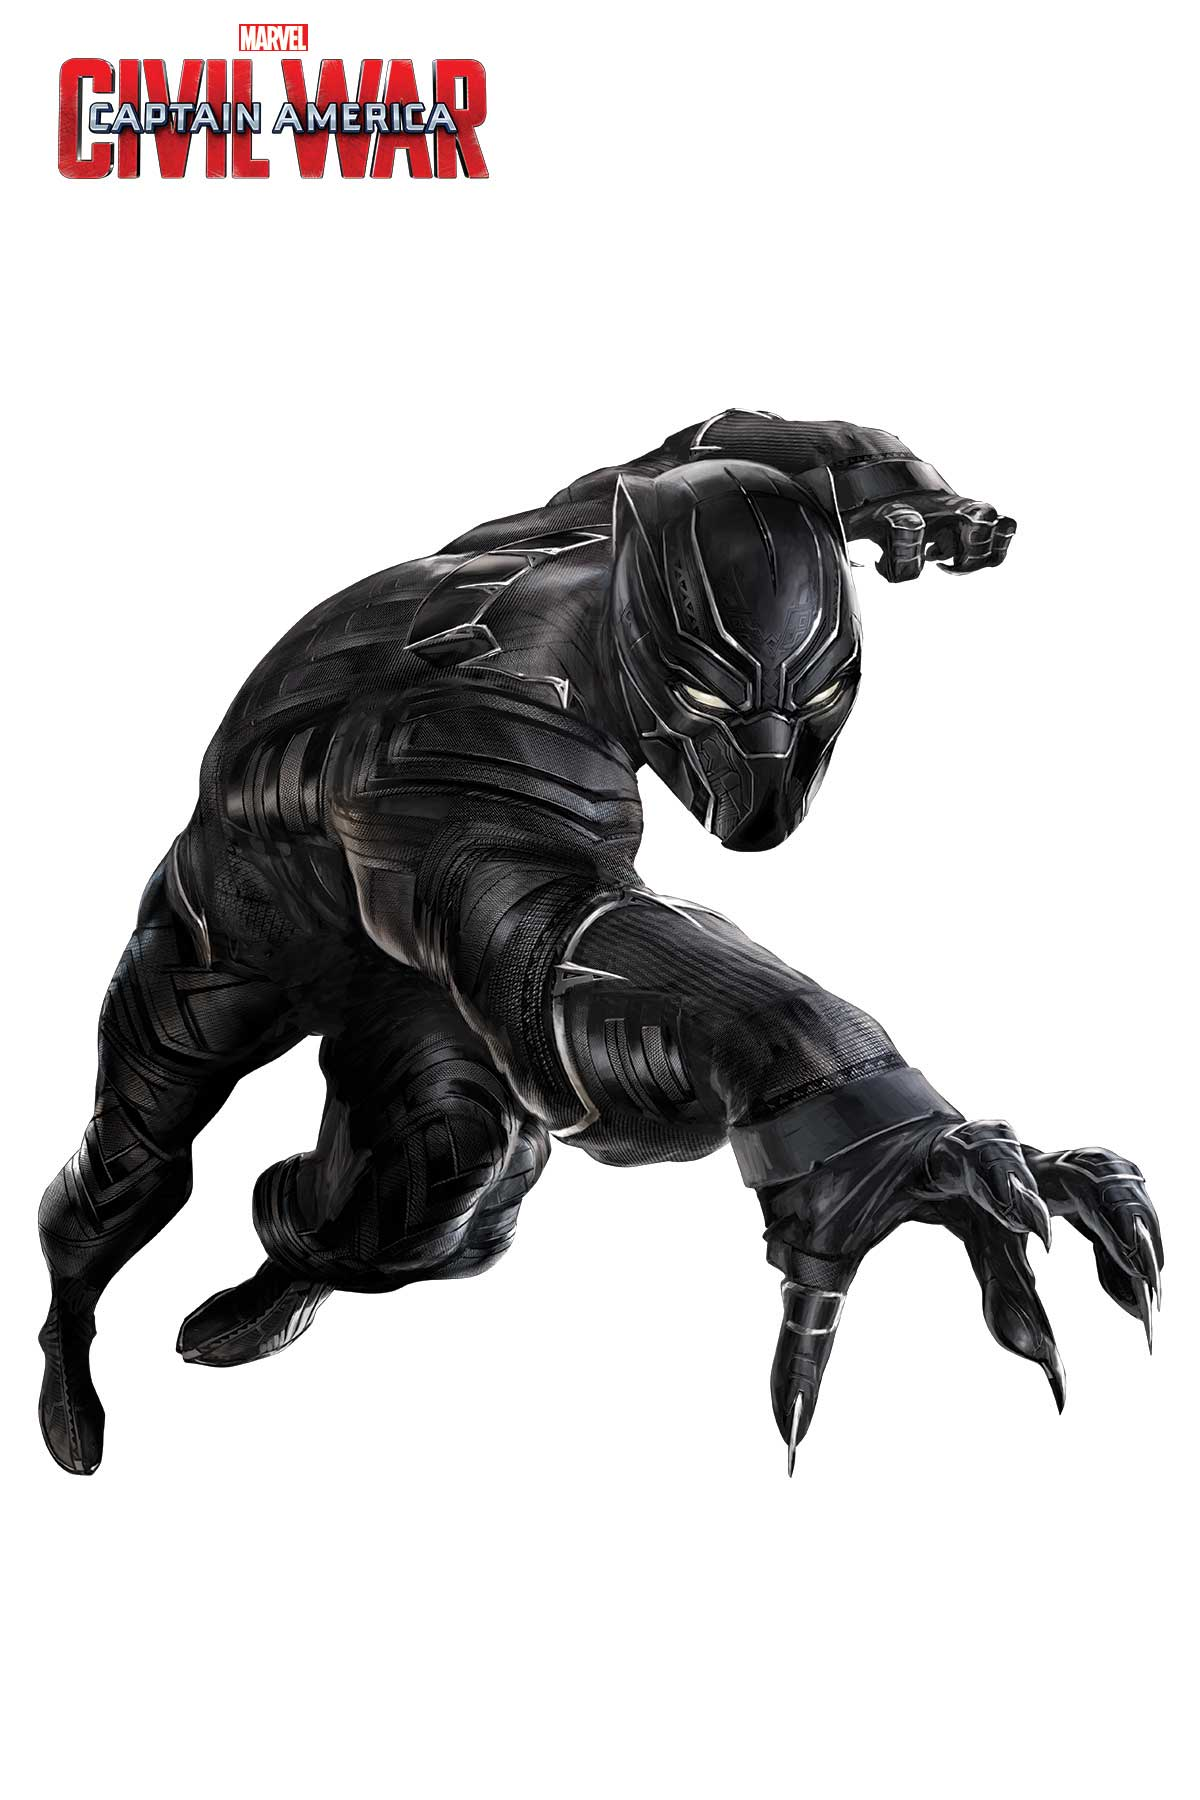 captain-america-civil-war-artwork-black-panther